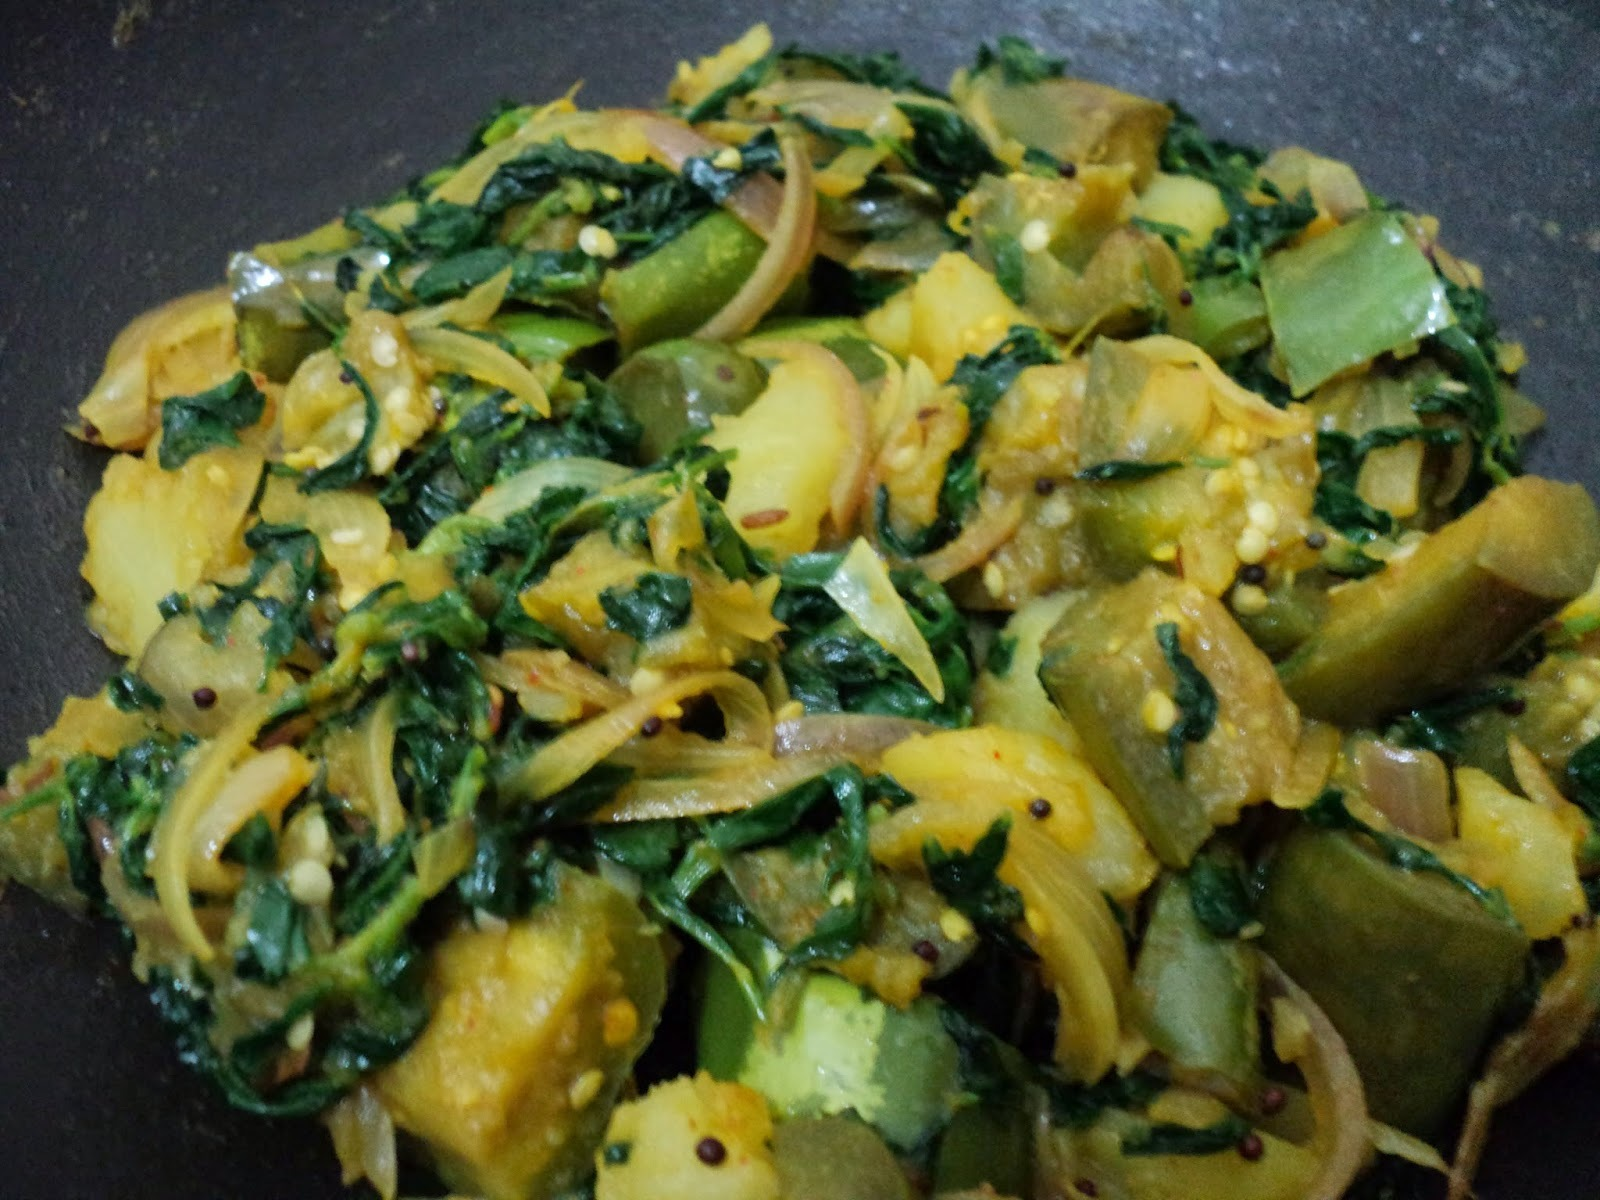 Methi Sagaa Kharada (Stir fried Fenugreek leaves)